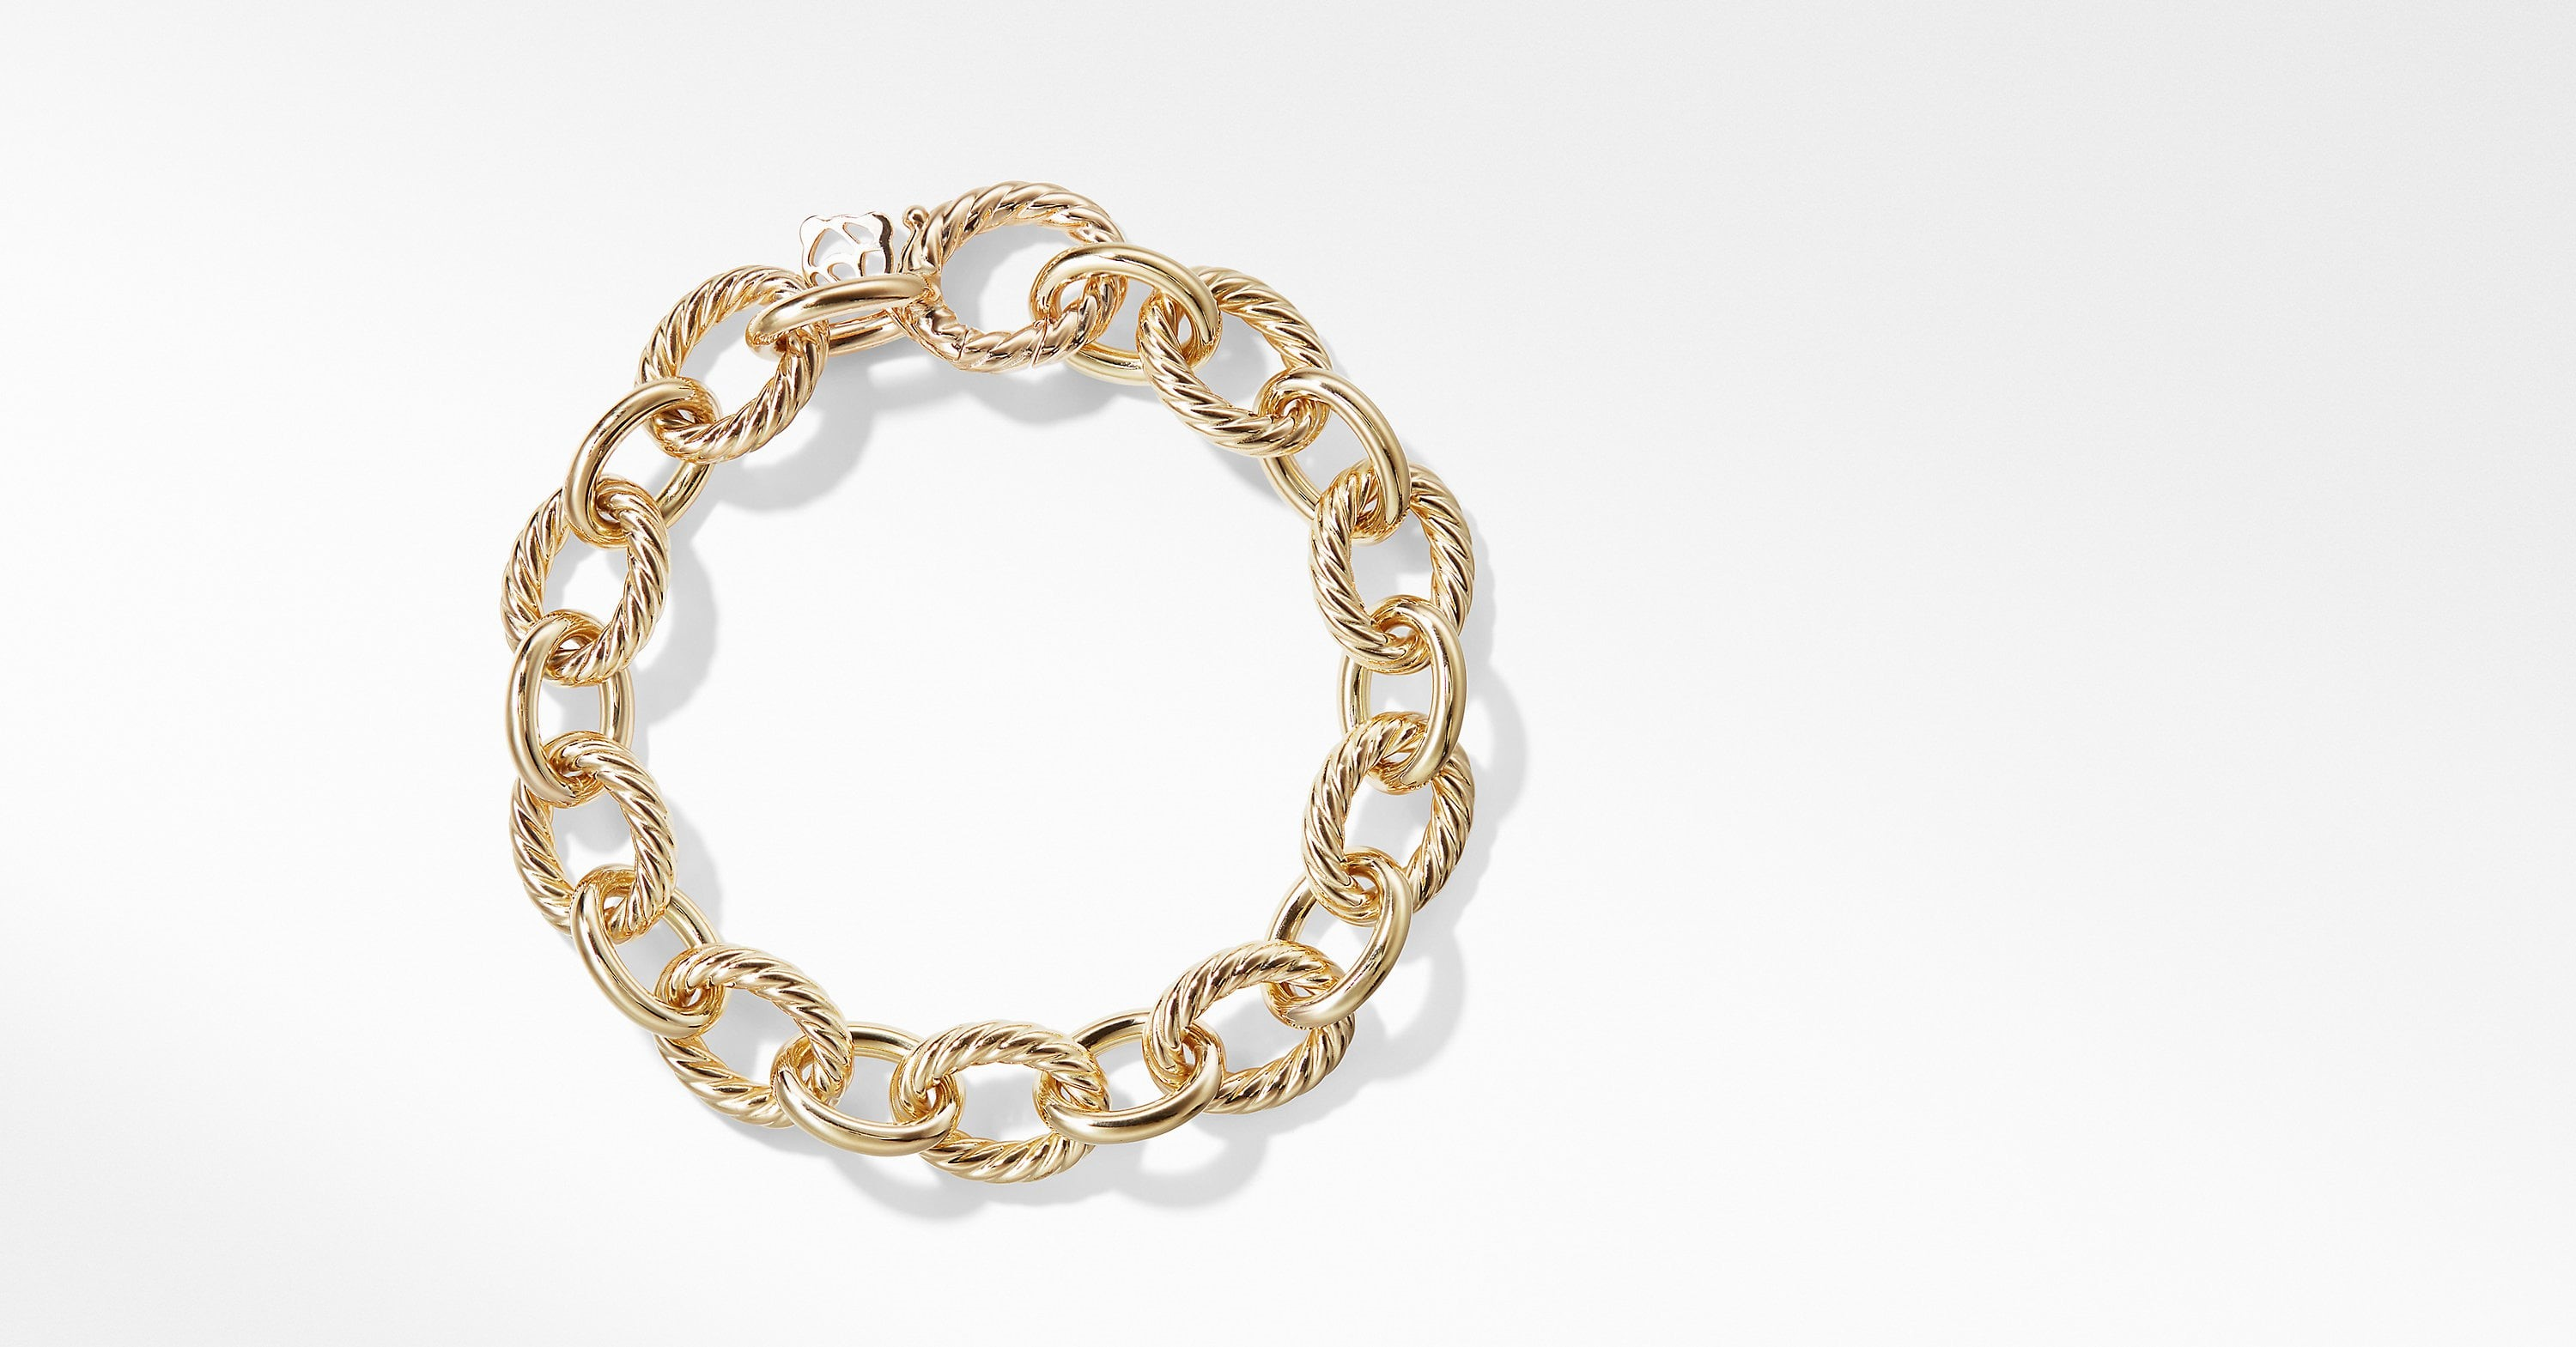 670913984 Home / Necklaces / Precious Metals / David Yurman Large Oval Link Bracelet  in 18k Gold